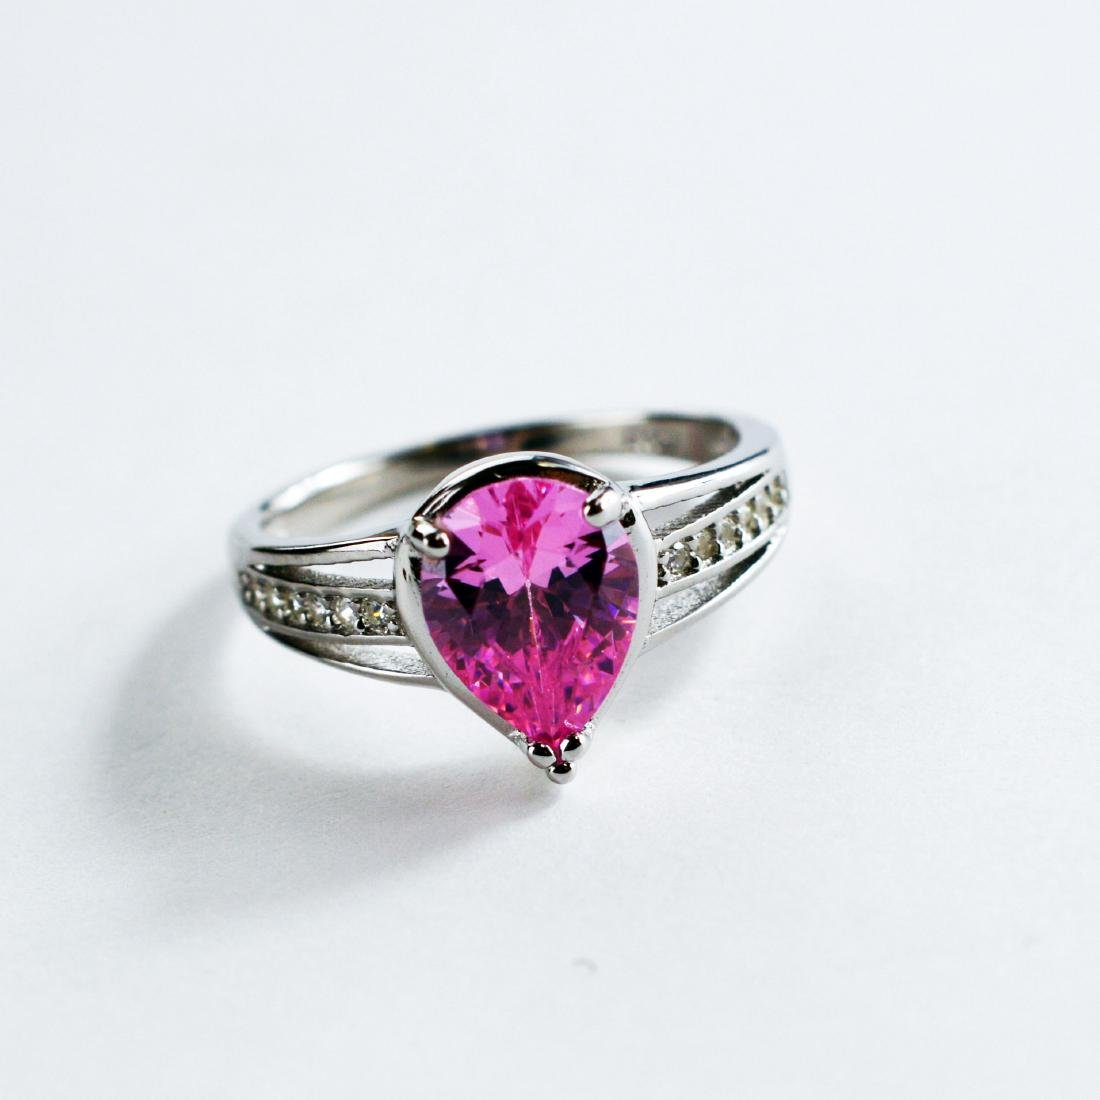 Pink pear shape stone ring